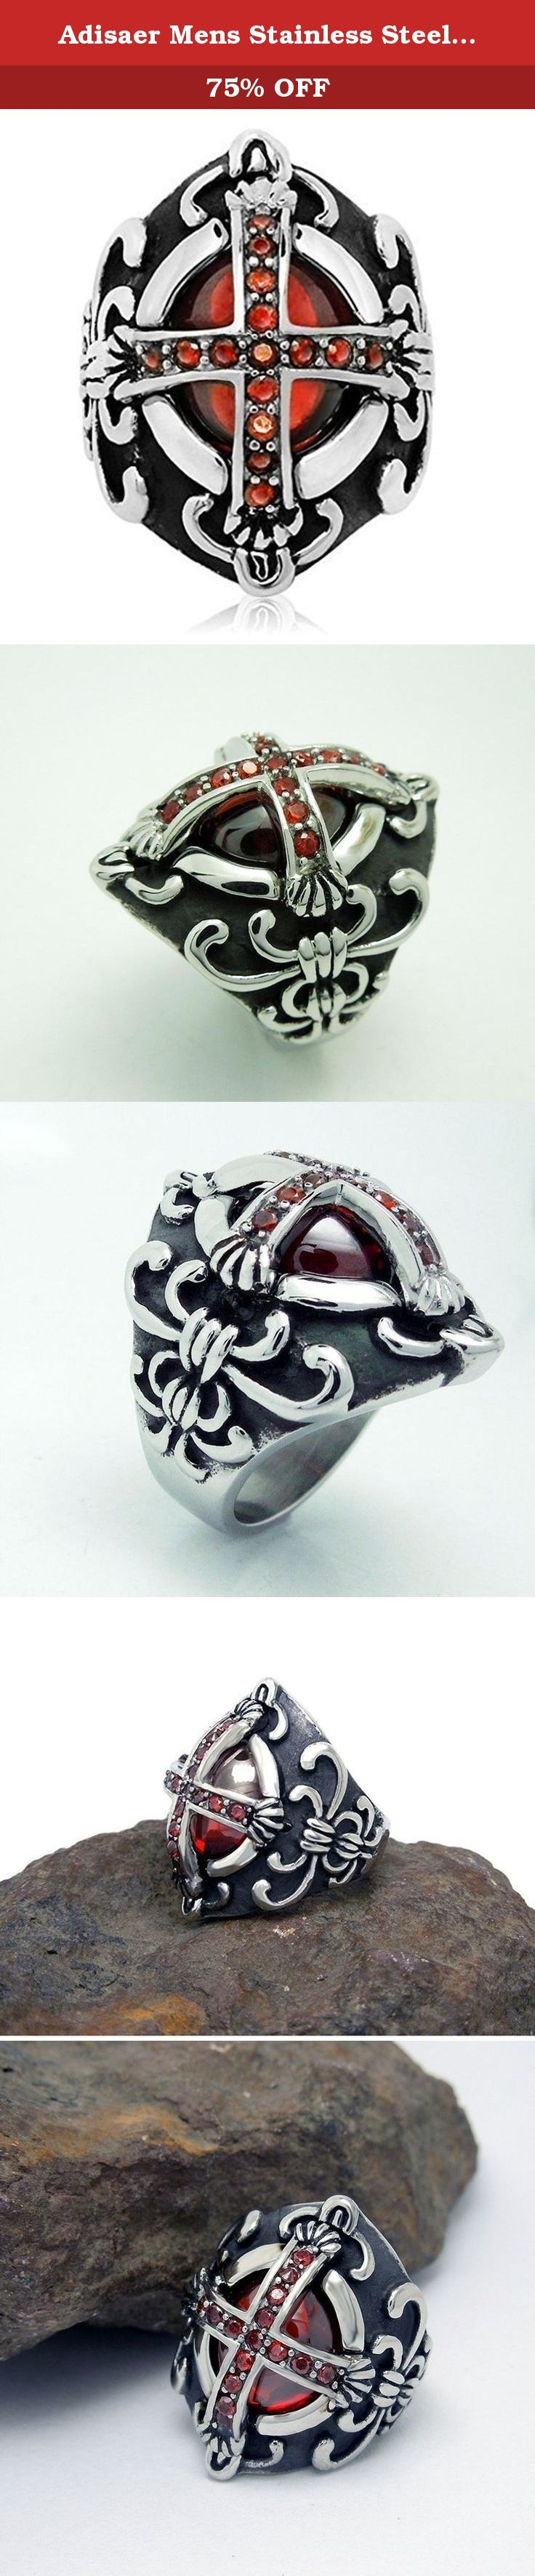 Adisaer Mens Stainless Steel Finger Rings Retro Red Cubic Zirconia Cross Gothic Band Vintage Ring Size 11. ∞ Brand Source ∞ A: At here waiting for you D: Doesn't mind how long it takes I : I love you S: So I do A: A whole heart for you E: Envisions the whole of you R: Run with you in the future Adisaer is not just jewelry, but sweet promises. Life is like a journey, Adisaer apply to join your trip sincerely and hope can become your close partner. She would love to accompany with you in…